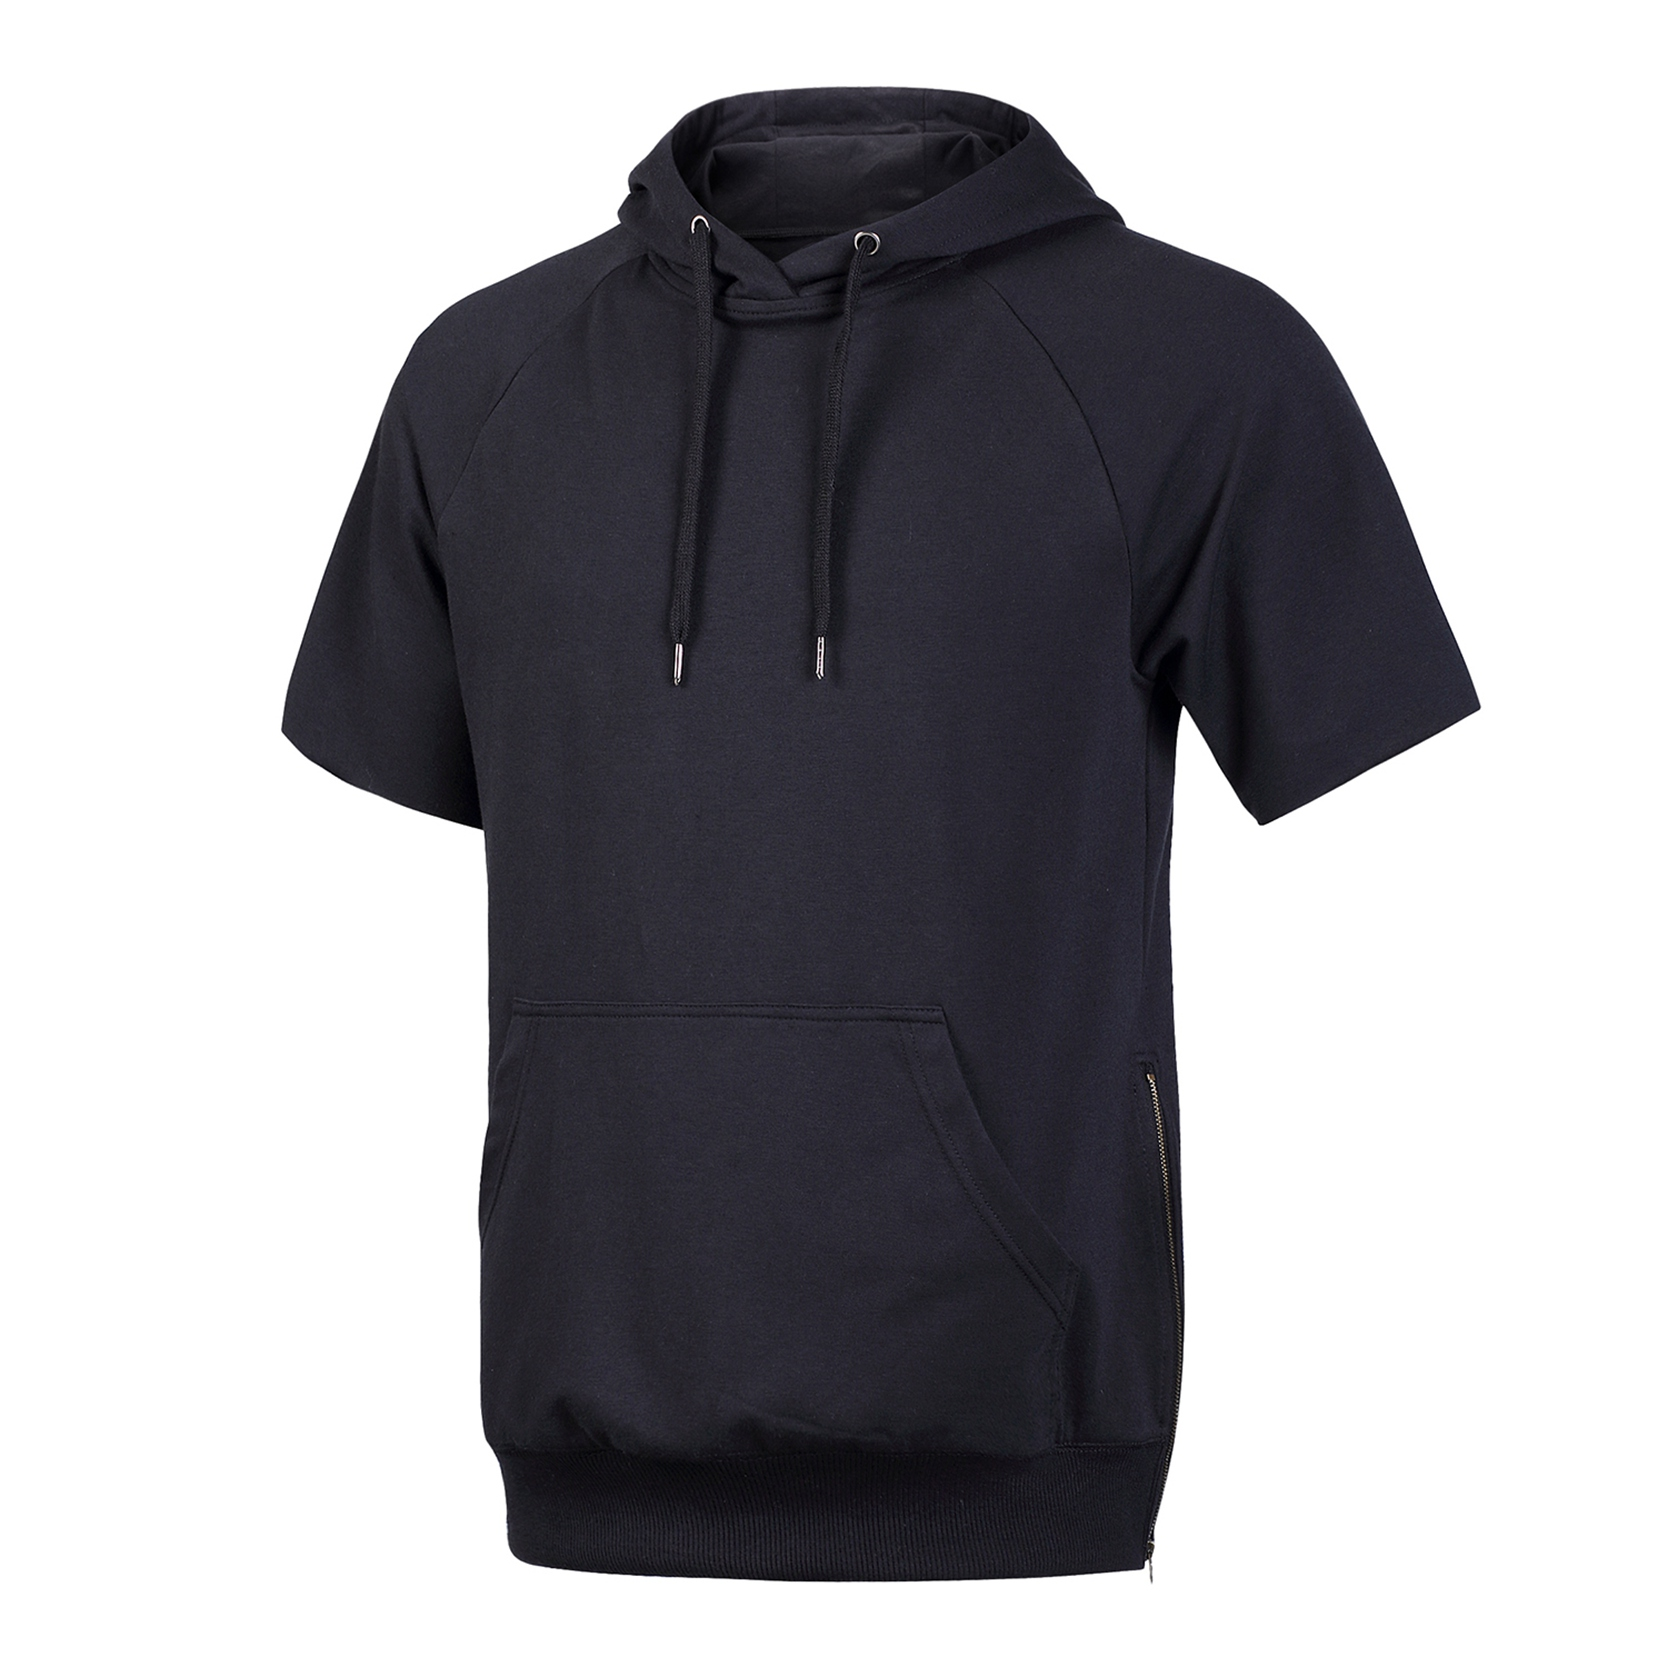 Online Get Cheap Cool Hoodies for Men -Aliexpress.com | Alibaba Group